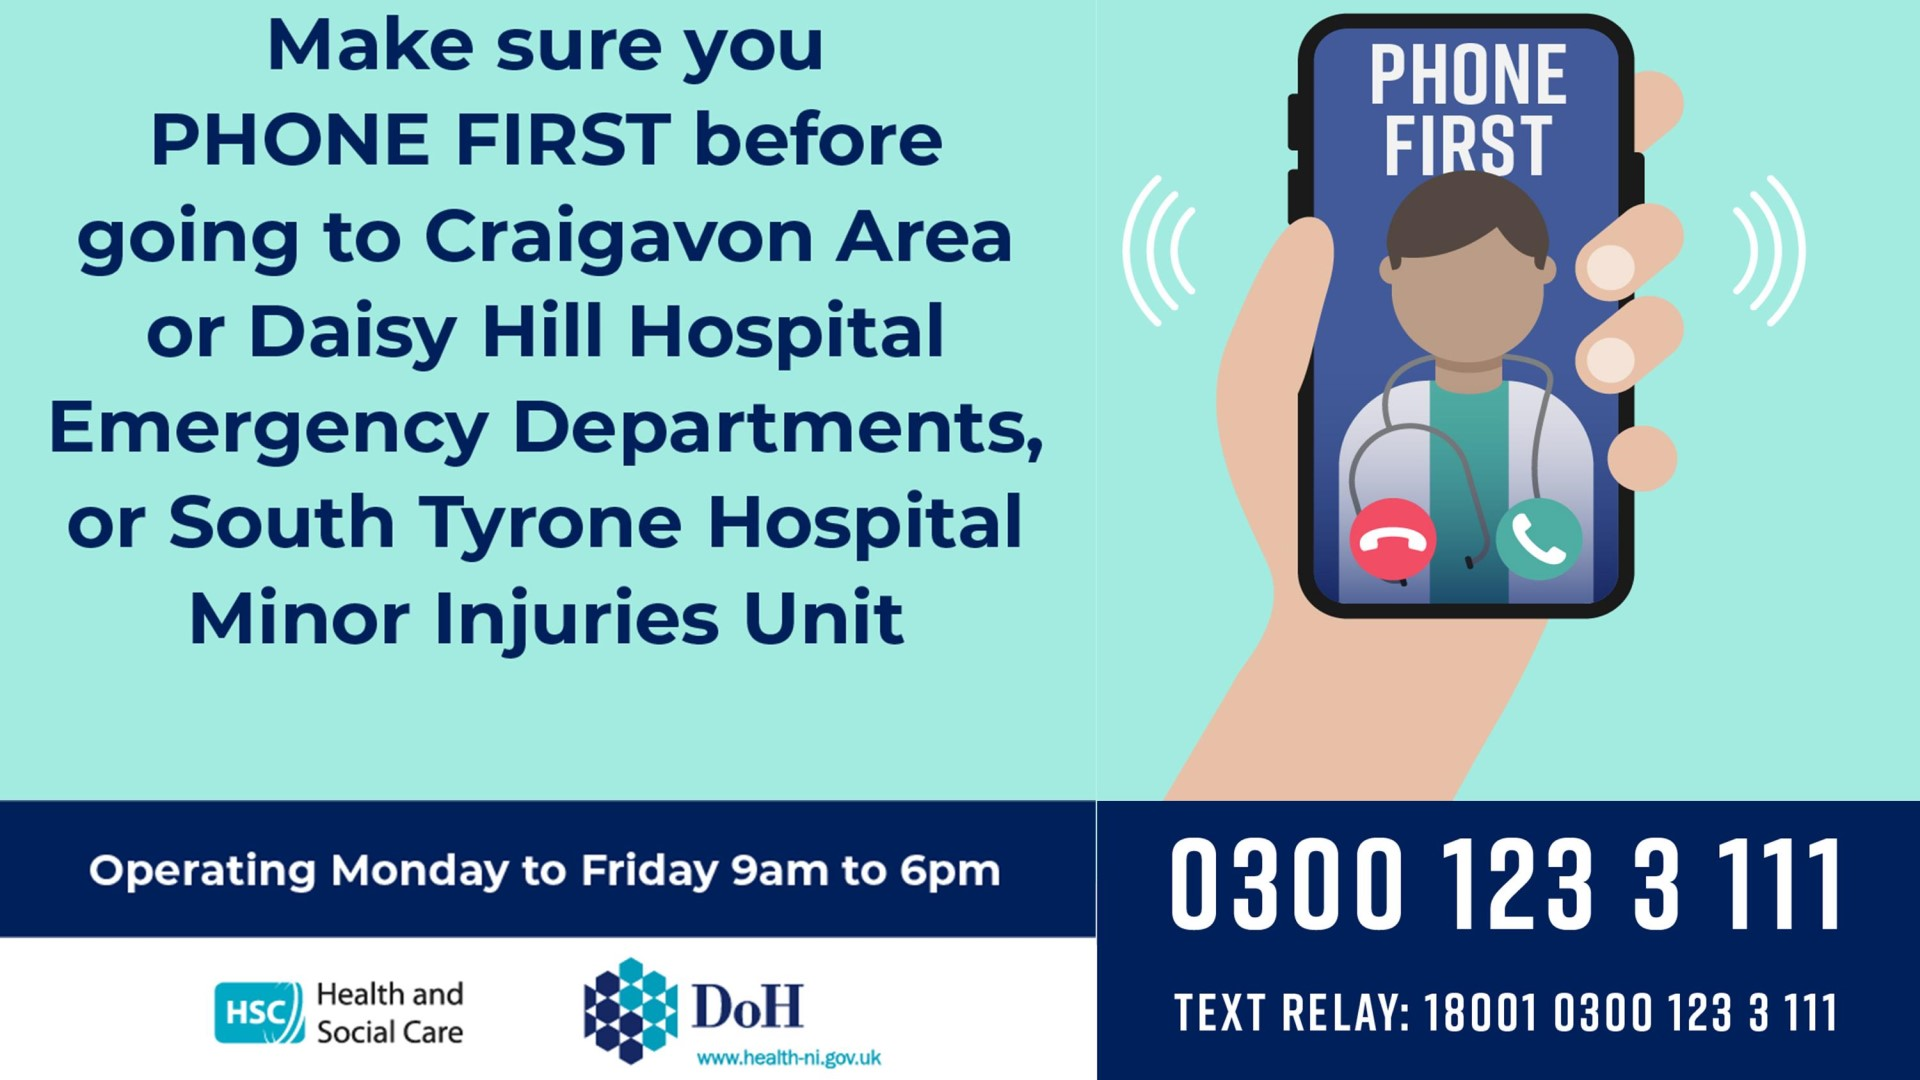 'Phone First for urgent care,' Southern Trust says | Newry Times - Daisy Hill Hospital A&E